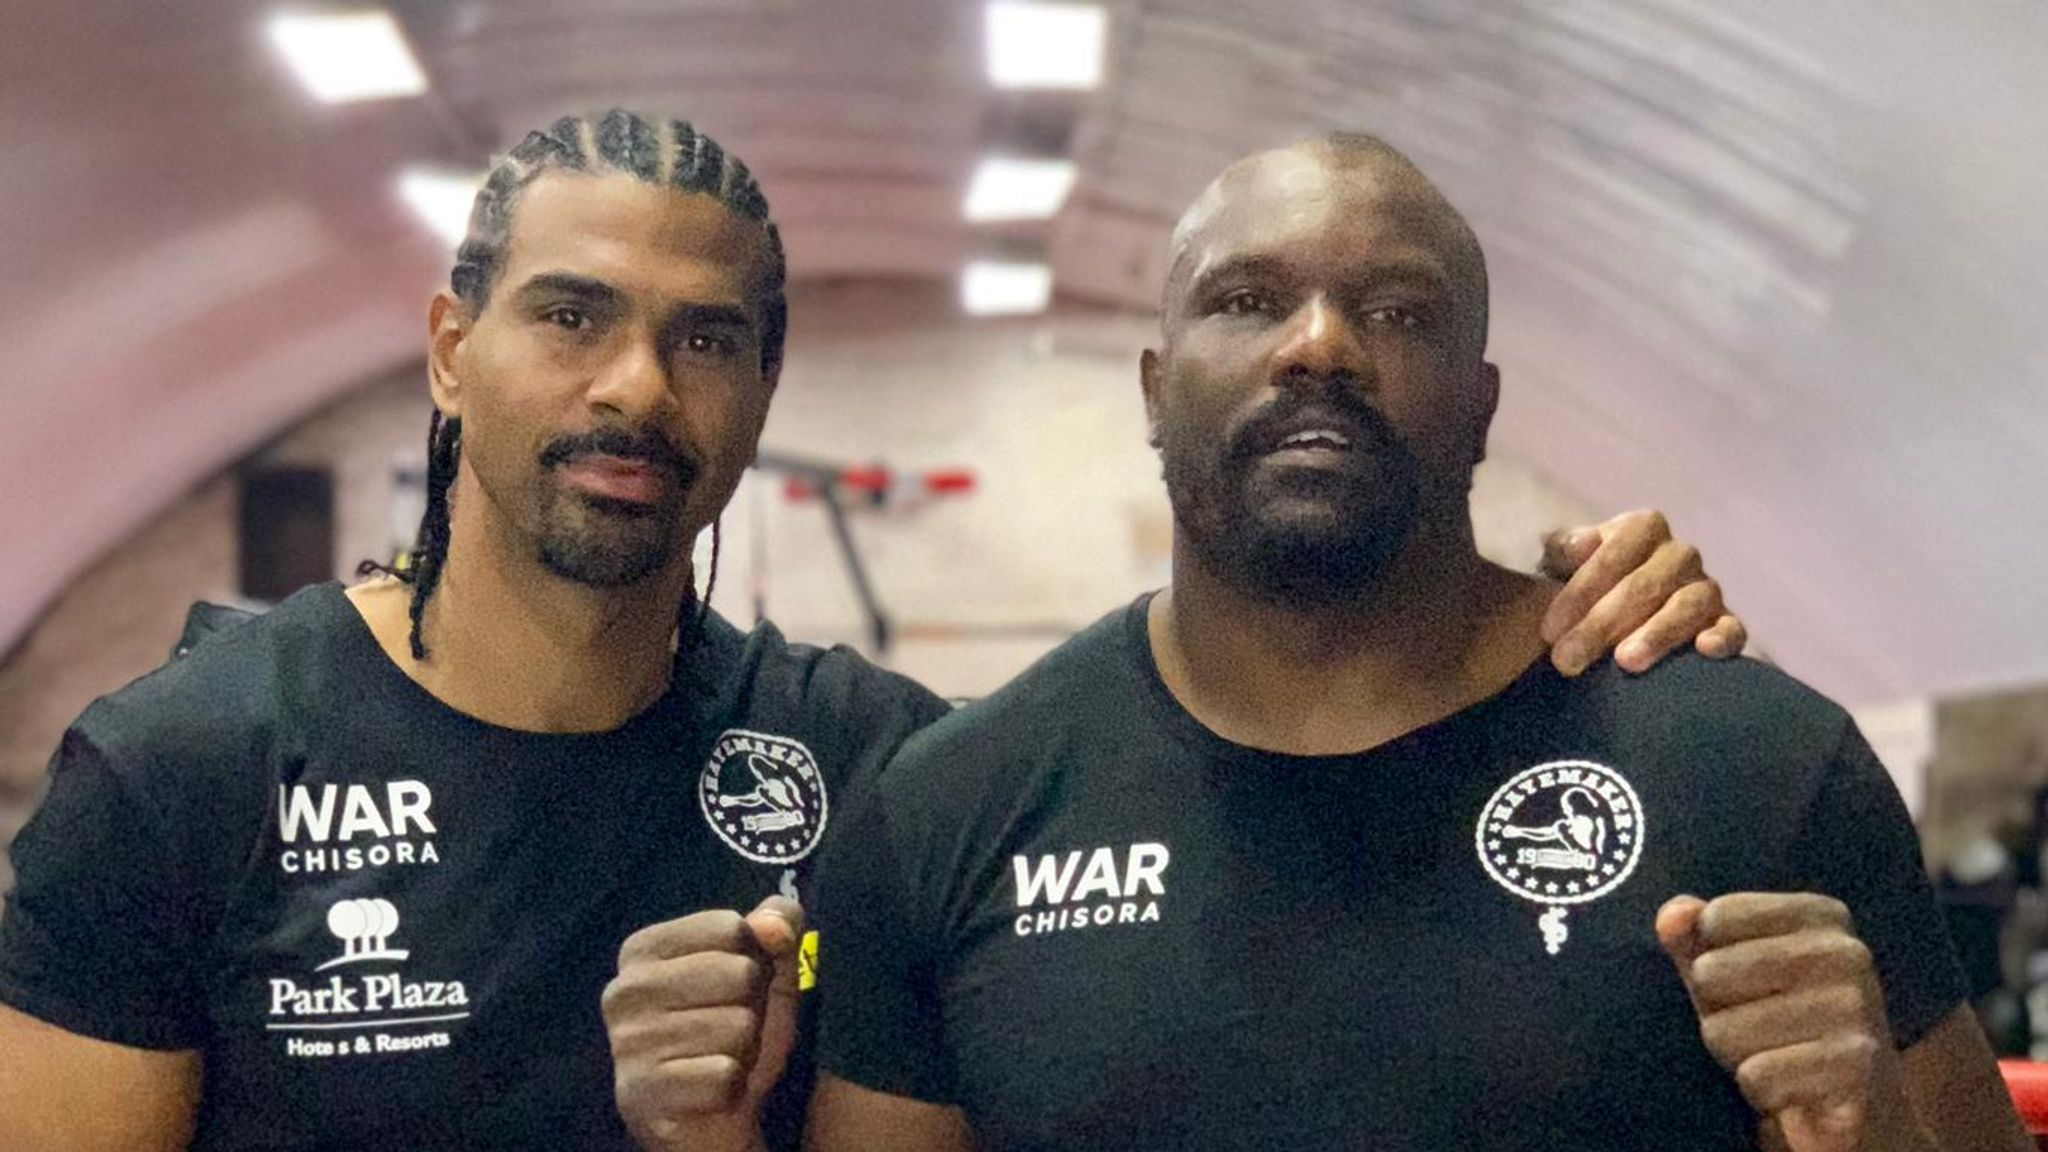 """C And H - David Haye Backs Chisora Against Usyk: """"It's About Size And Weight, He's Going To Cause An Upset"""""""